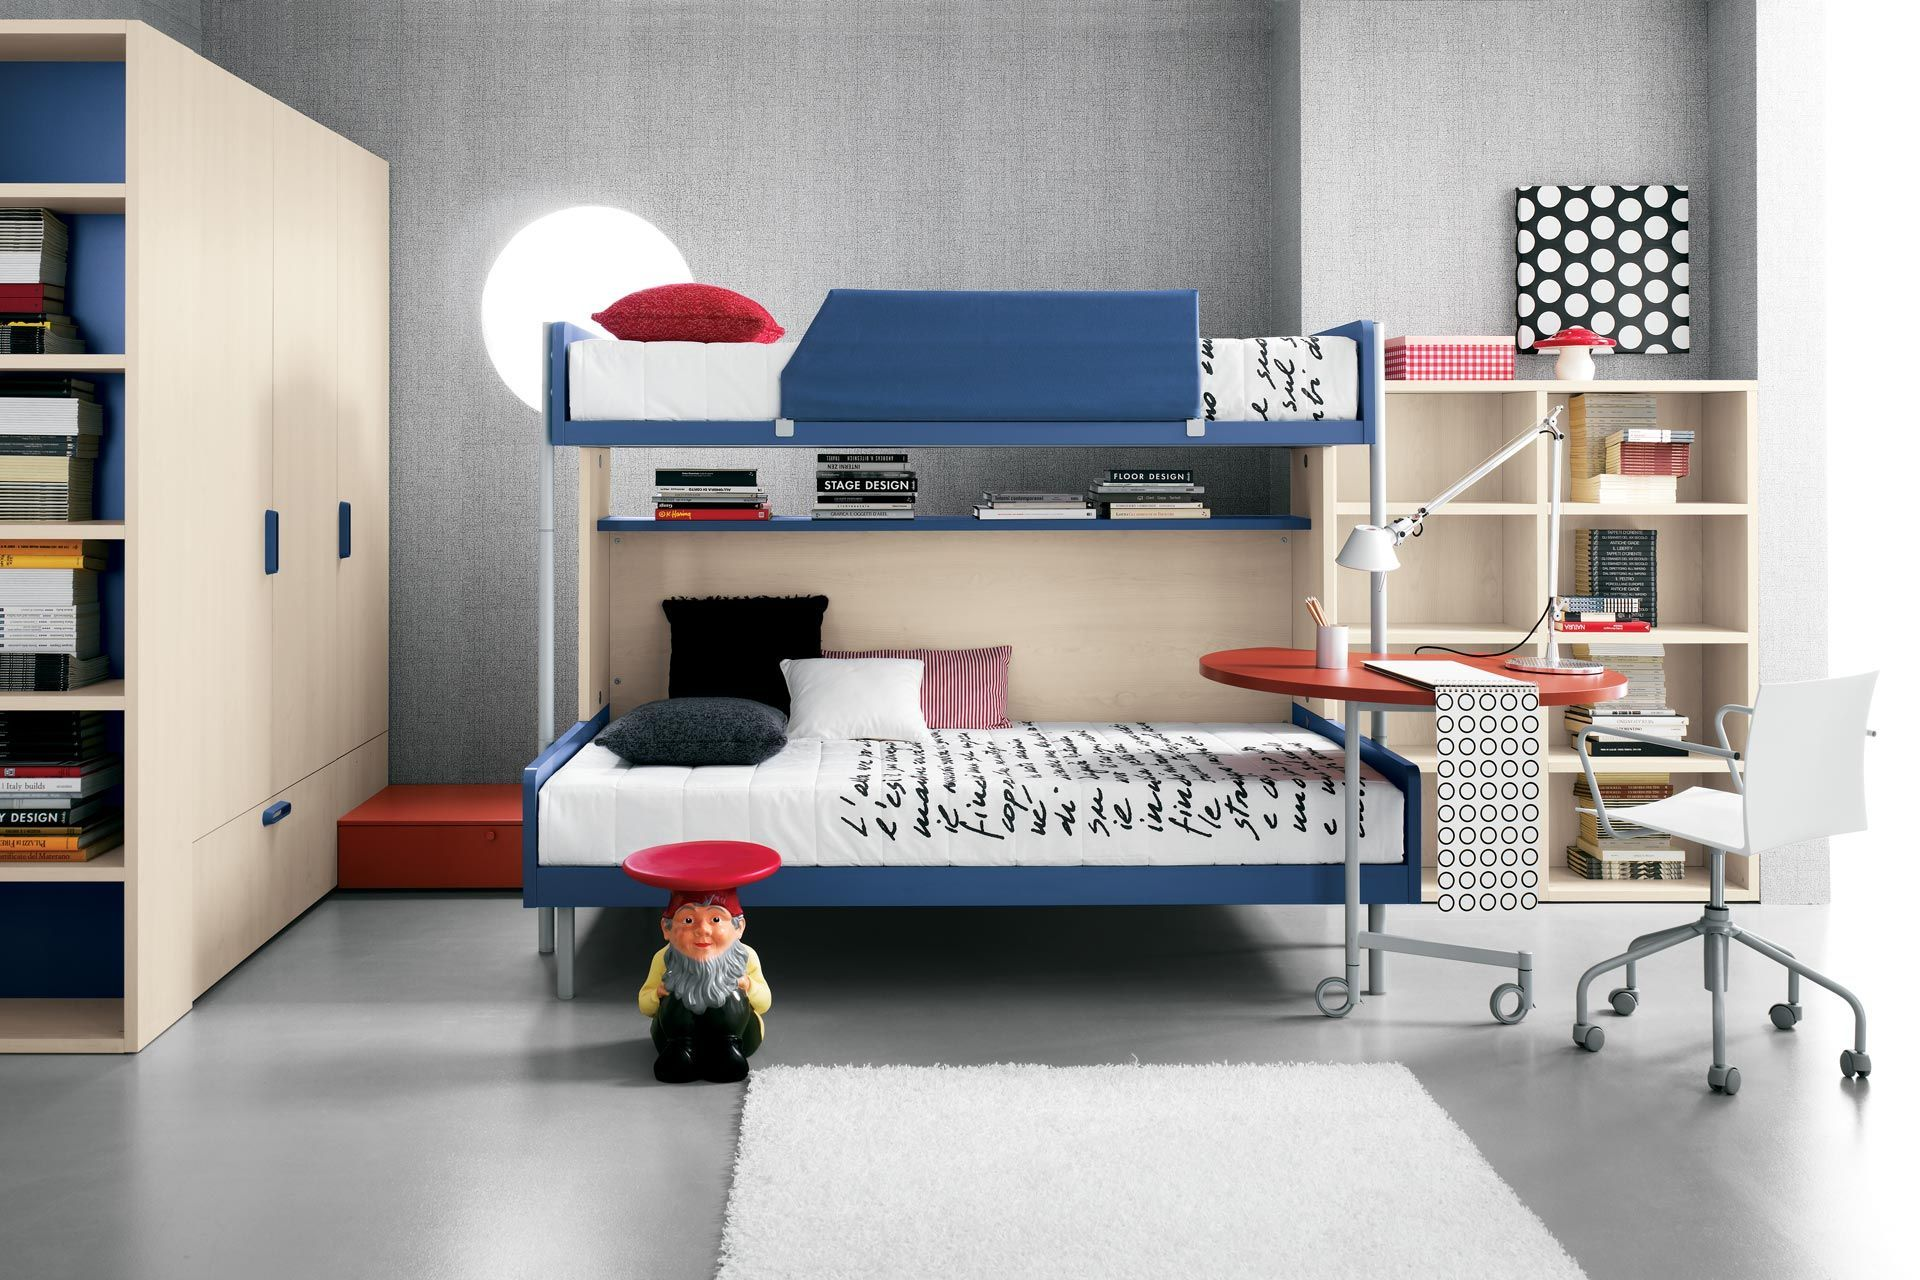 Cool loft bed ideas  Teen Room Designs Cool Bunk Beds Design for Teens Room in Awesome